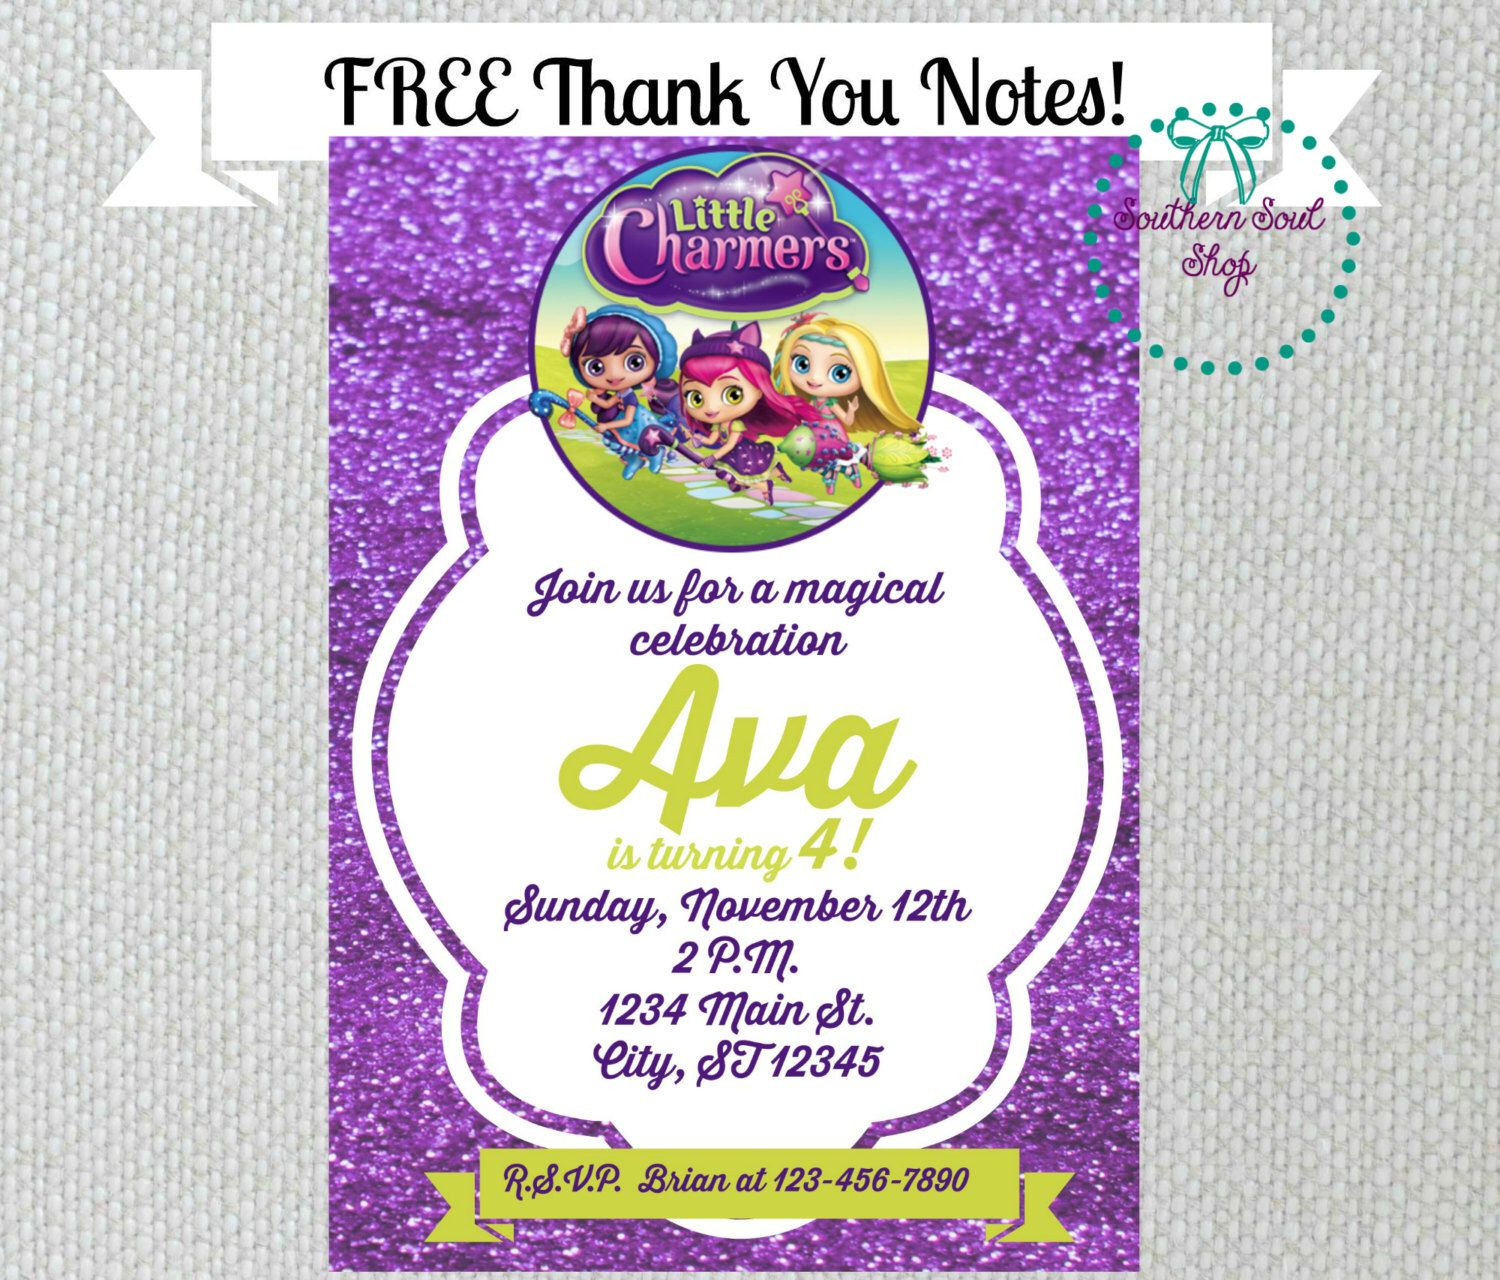 Little Charmers Birthday Party Invitations And Free Thank You Cards